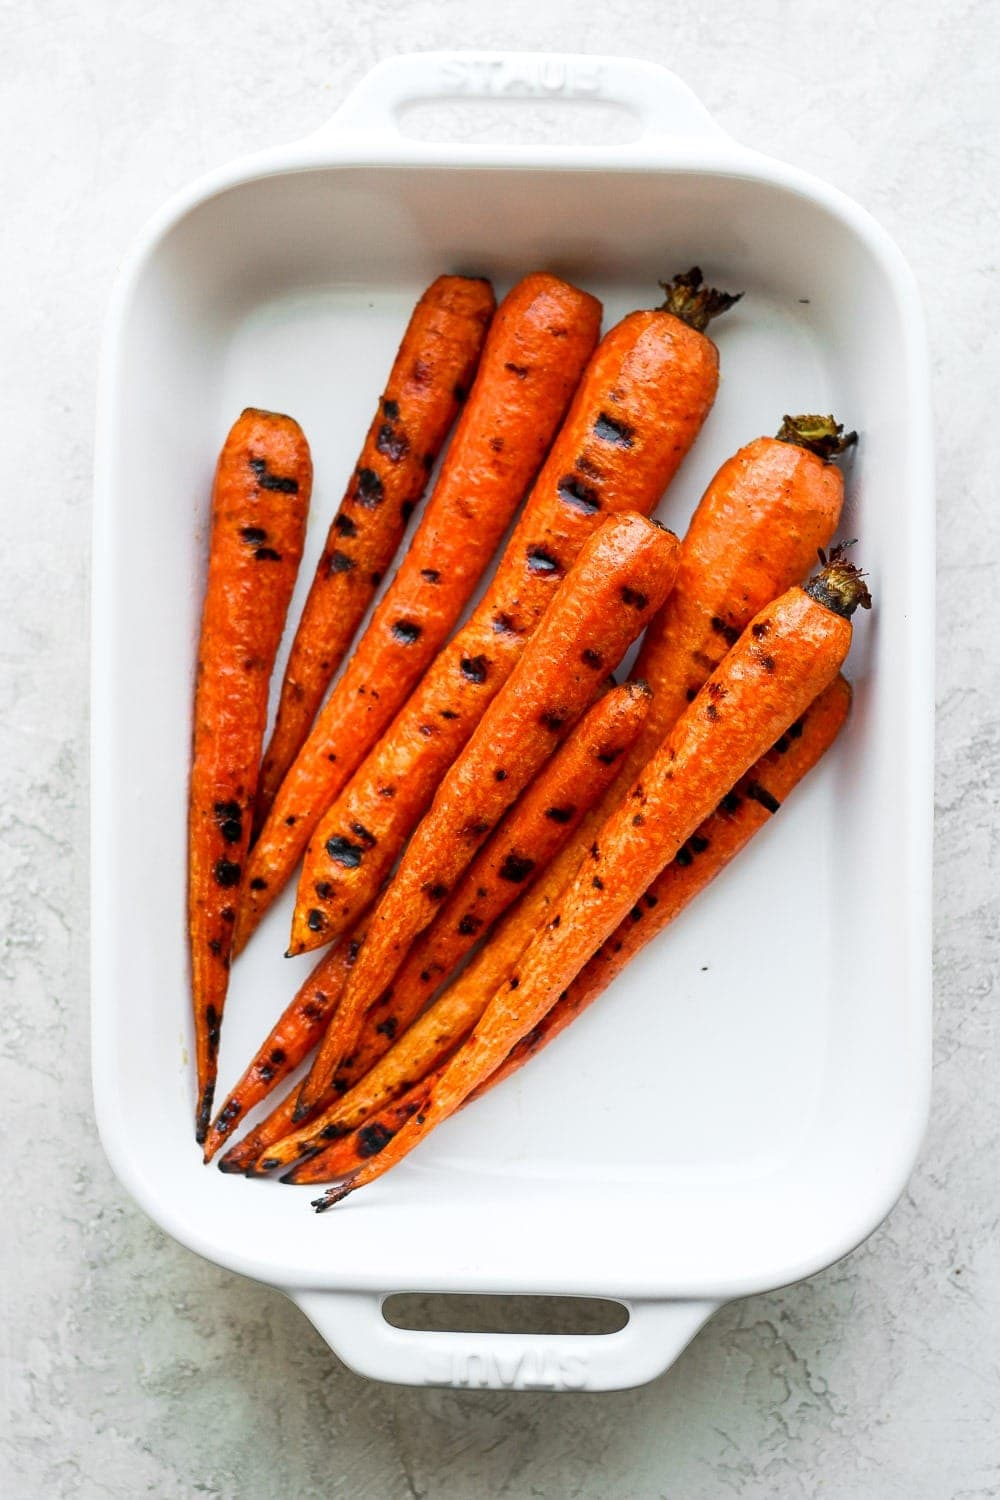 Grilled Carrots in a casserole dish